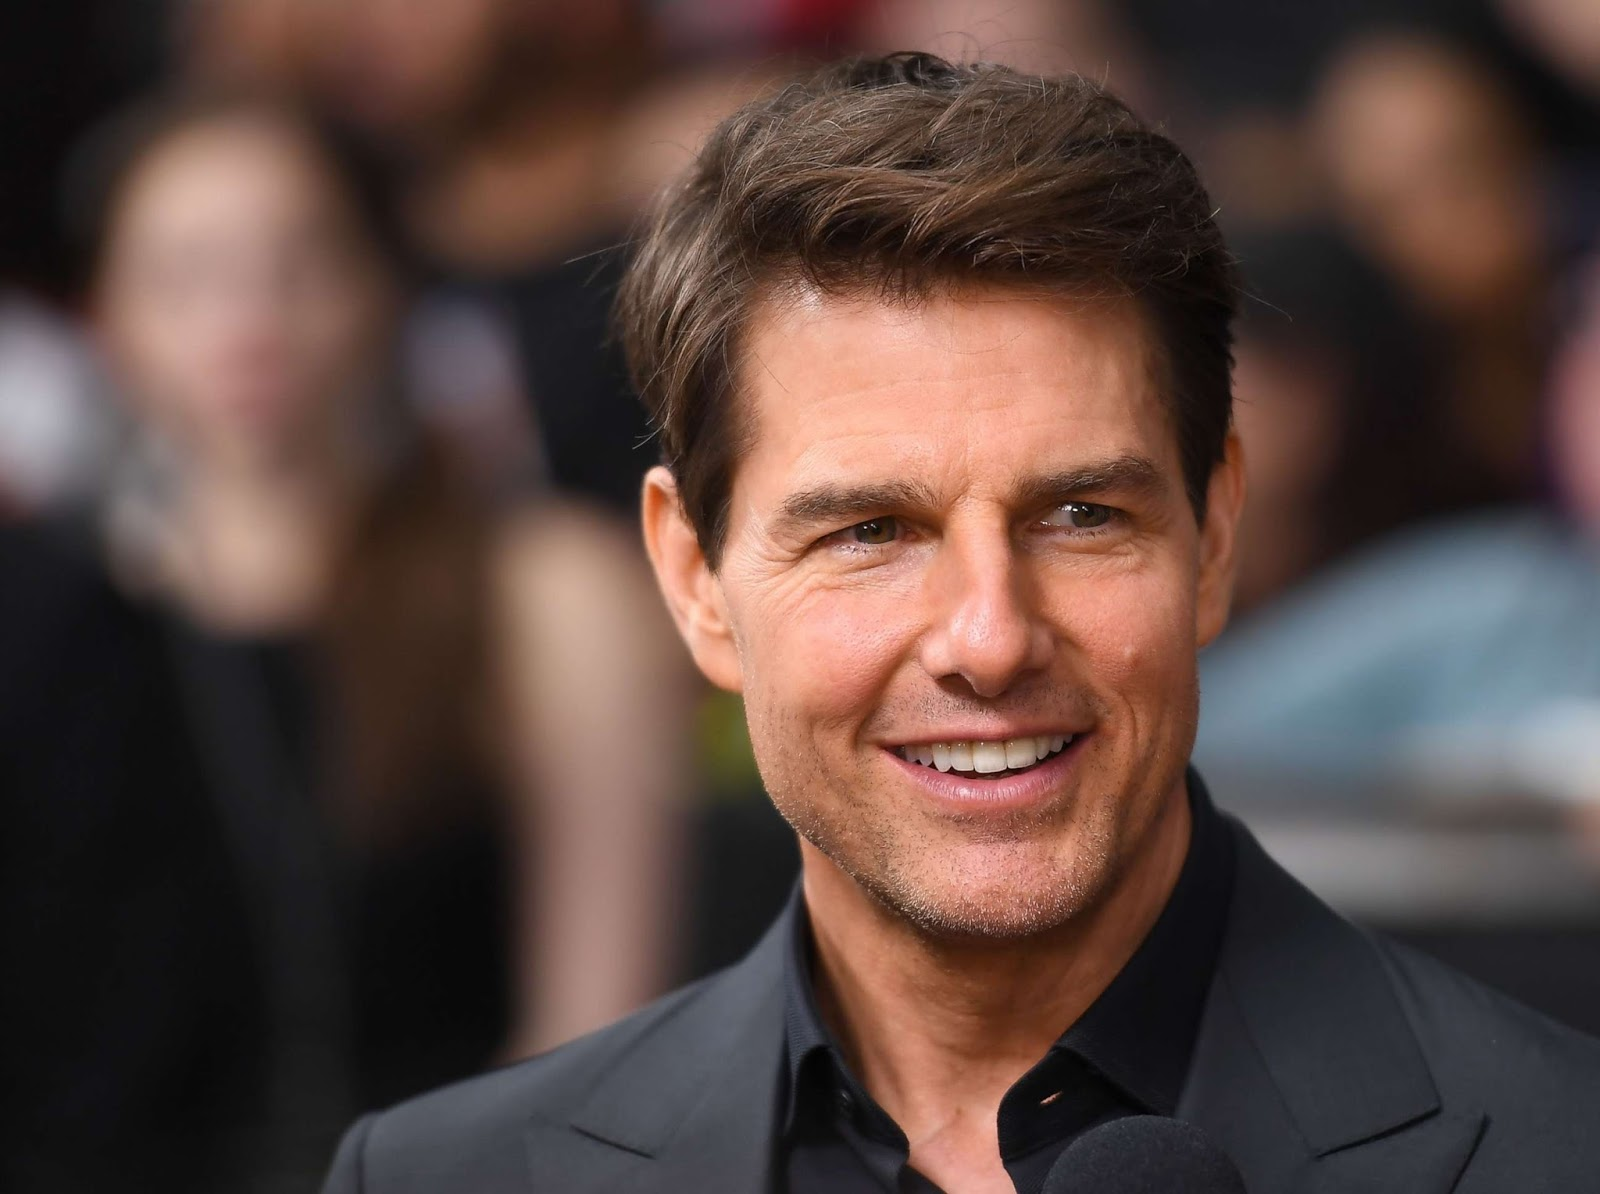 tom cruise best hd picture, tom cruise photos, all hd photos of tom